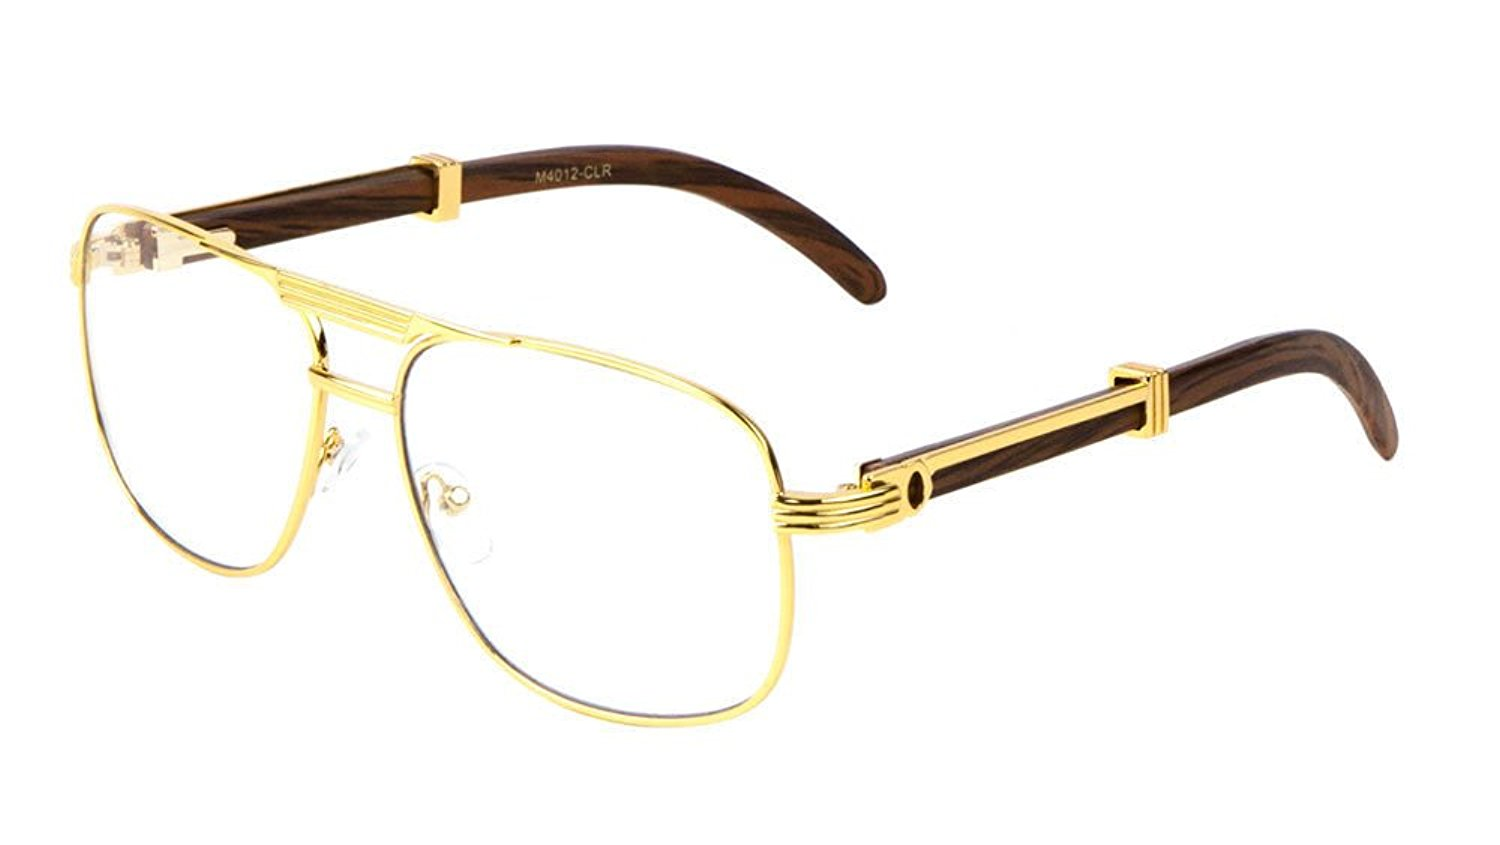 com: Executive Metal & Wood Aviator Eyeglasses / Clear Lens ...